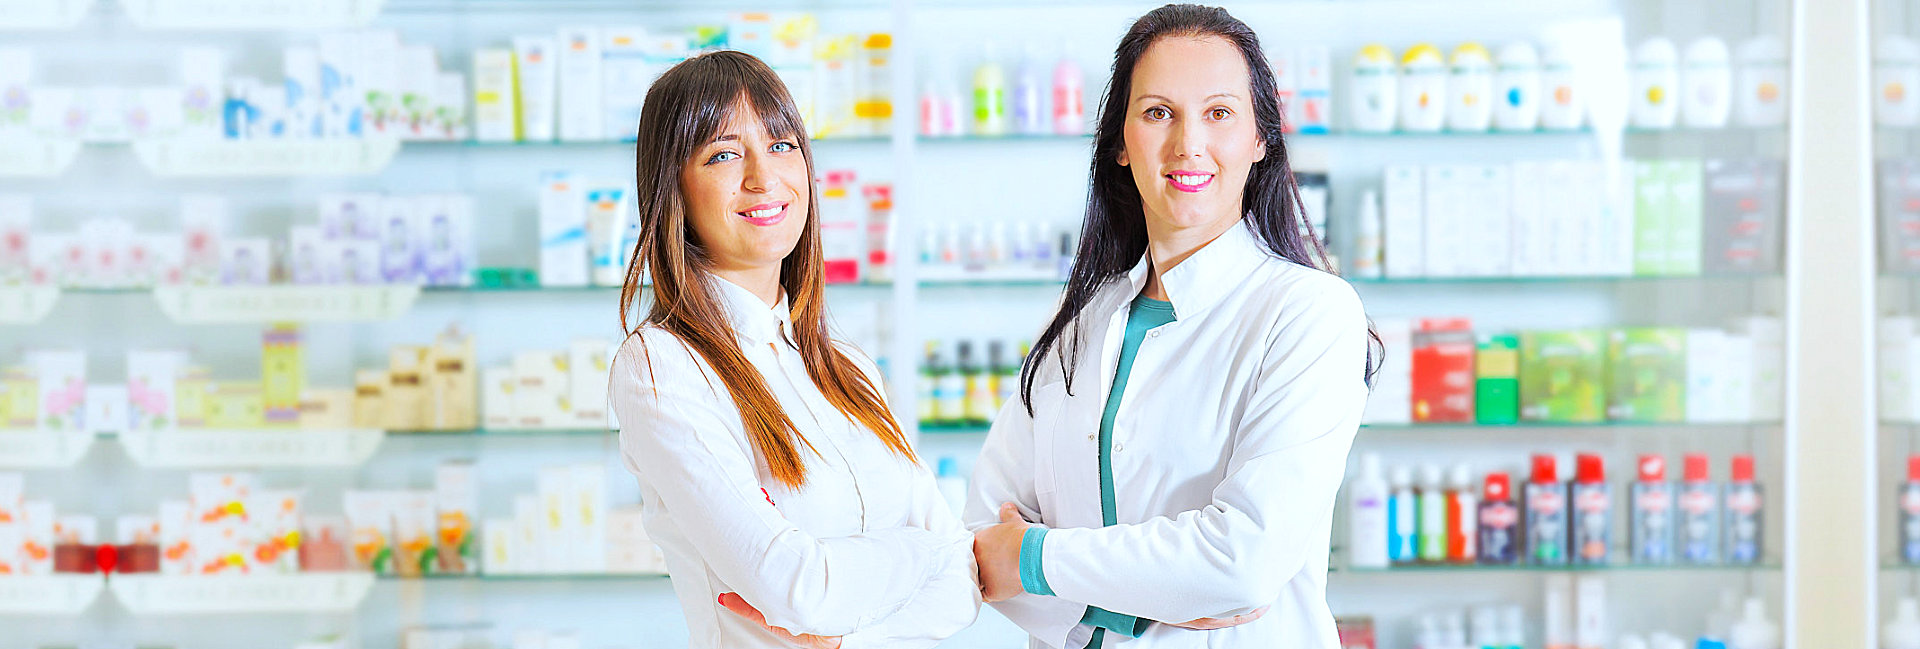 female pharmacist smiling at the camera